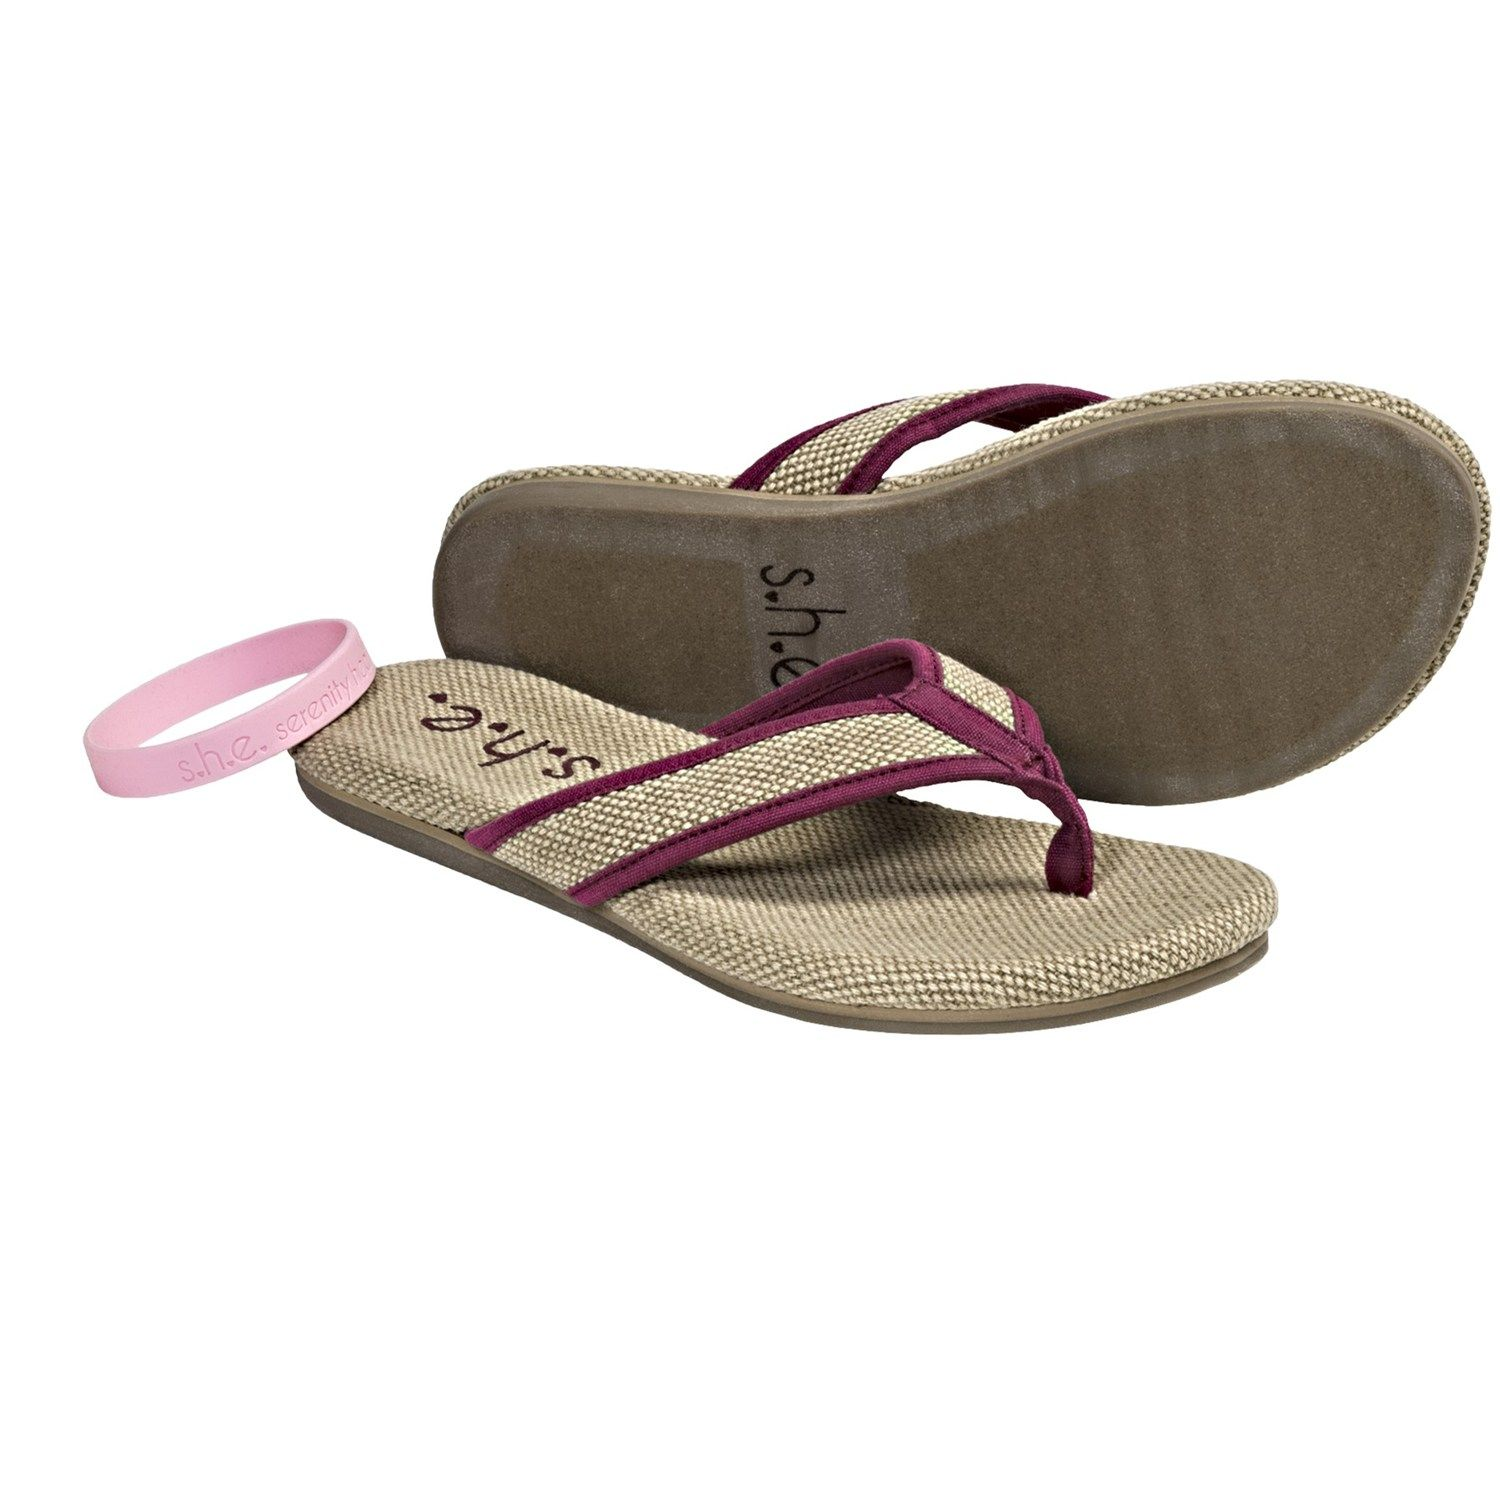 cb73dbb1324339 S.H.E. Hemp Sandals - Flip-Flops (For Women) in Burgundy